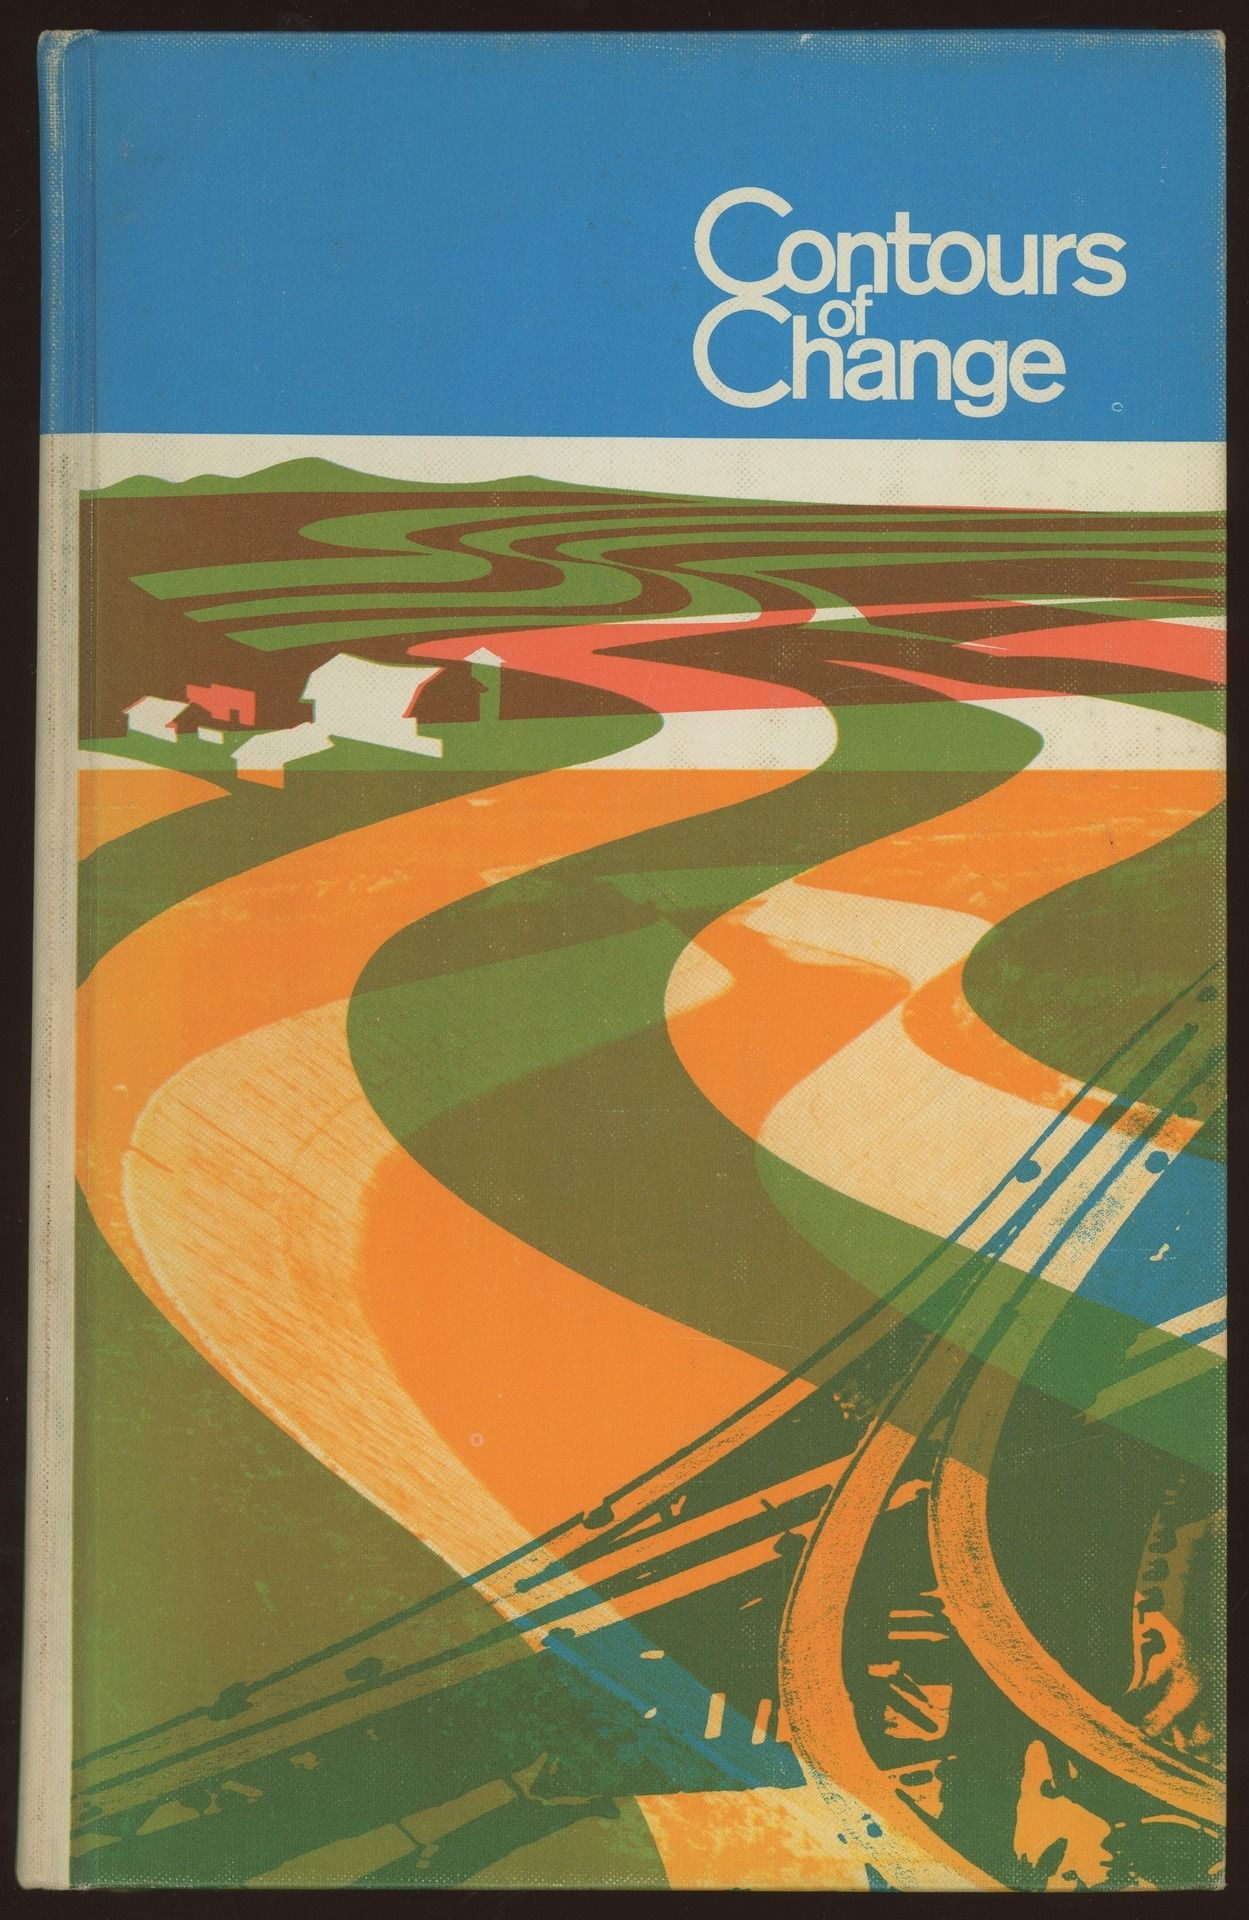 Yearbook of Agriculture 1970 Contours of Change (1970